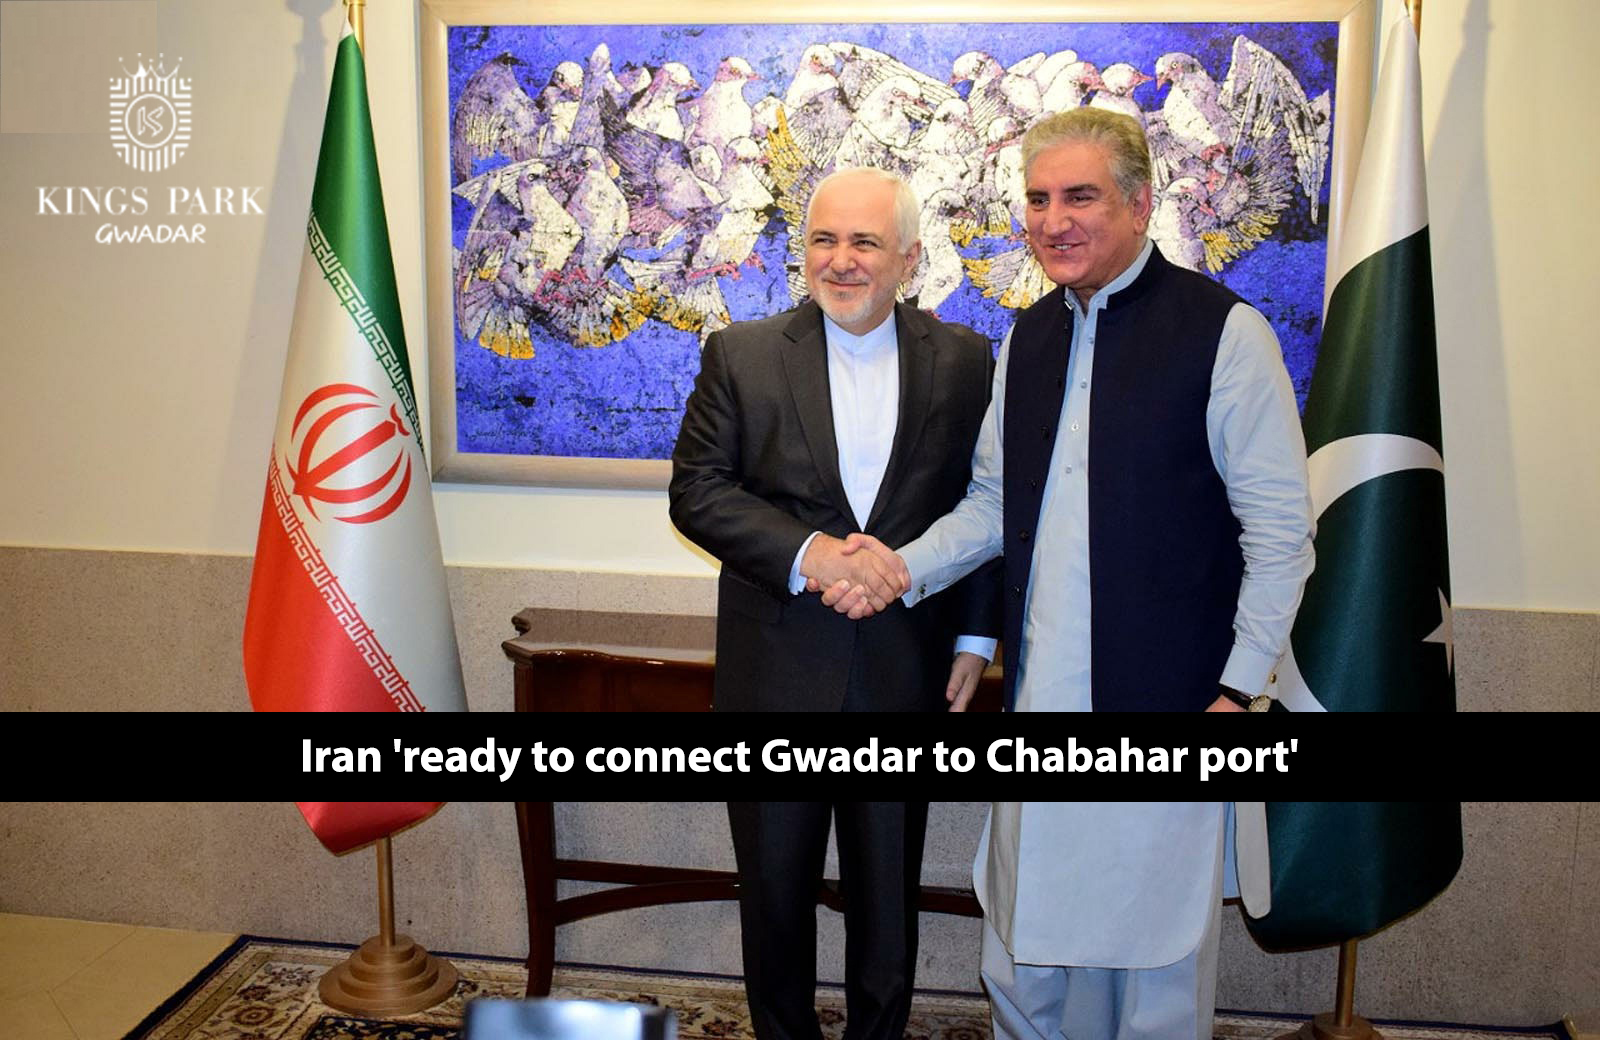 Iran 'ready to connect Gwadar to Chabahar port'